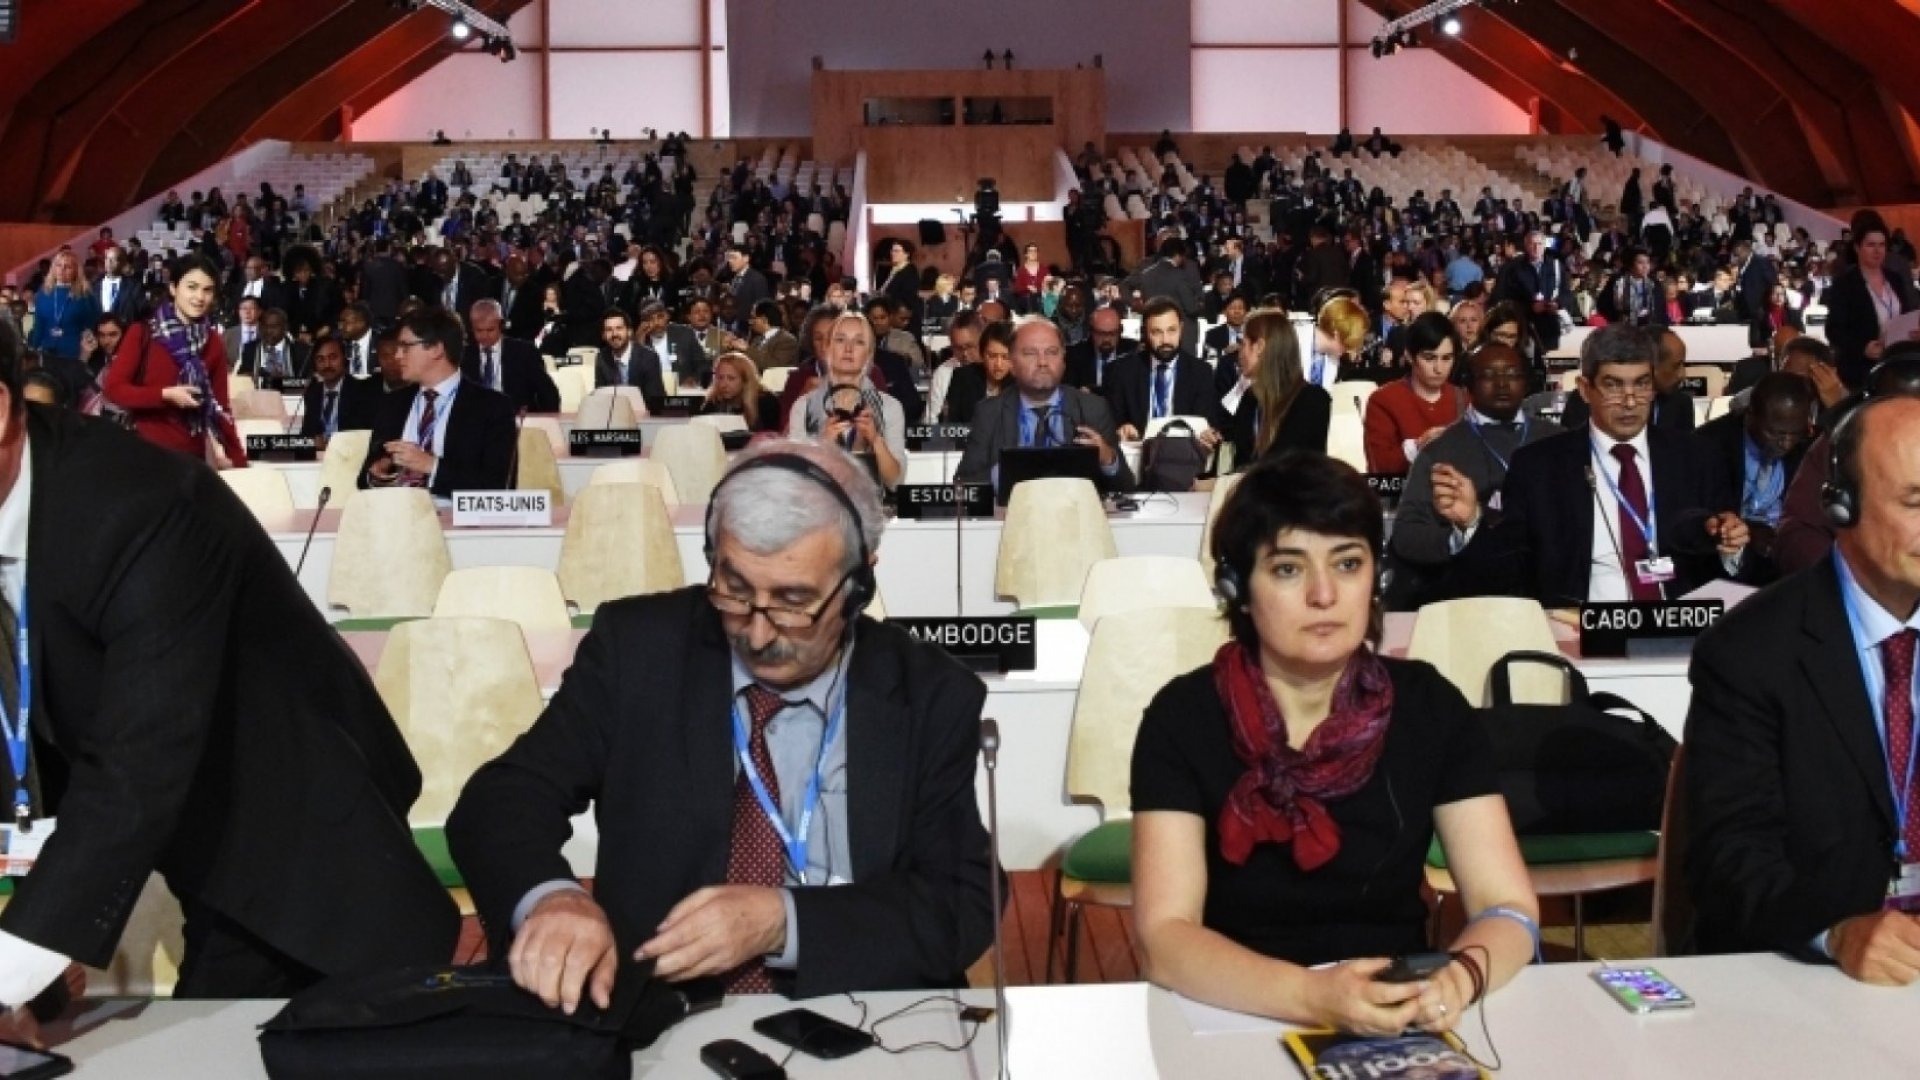 The Simple Negotiation Tactic That Got 195 Countries to Agree at the Paris Climate Talks